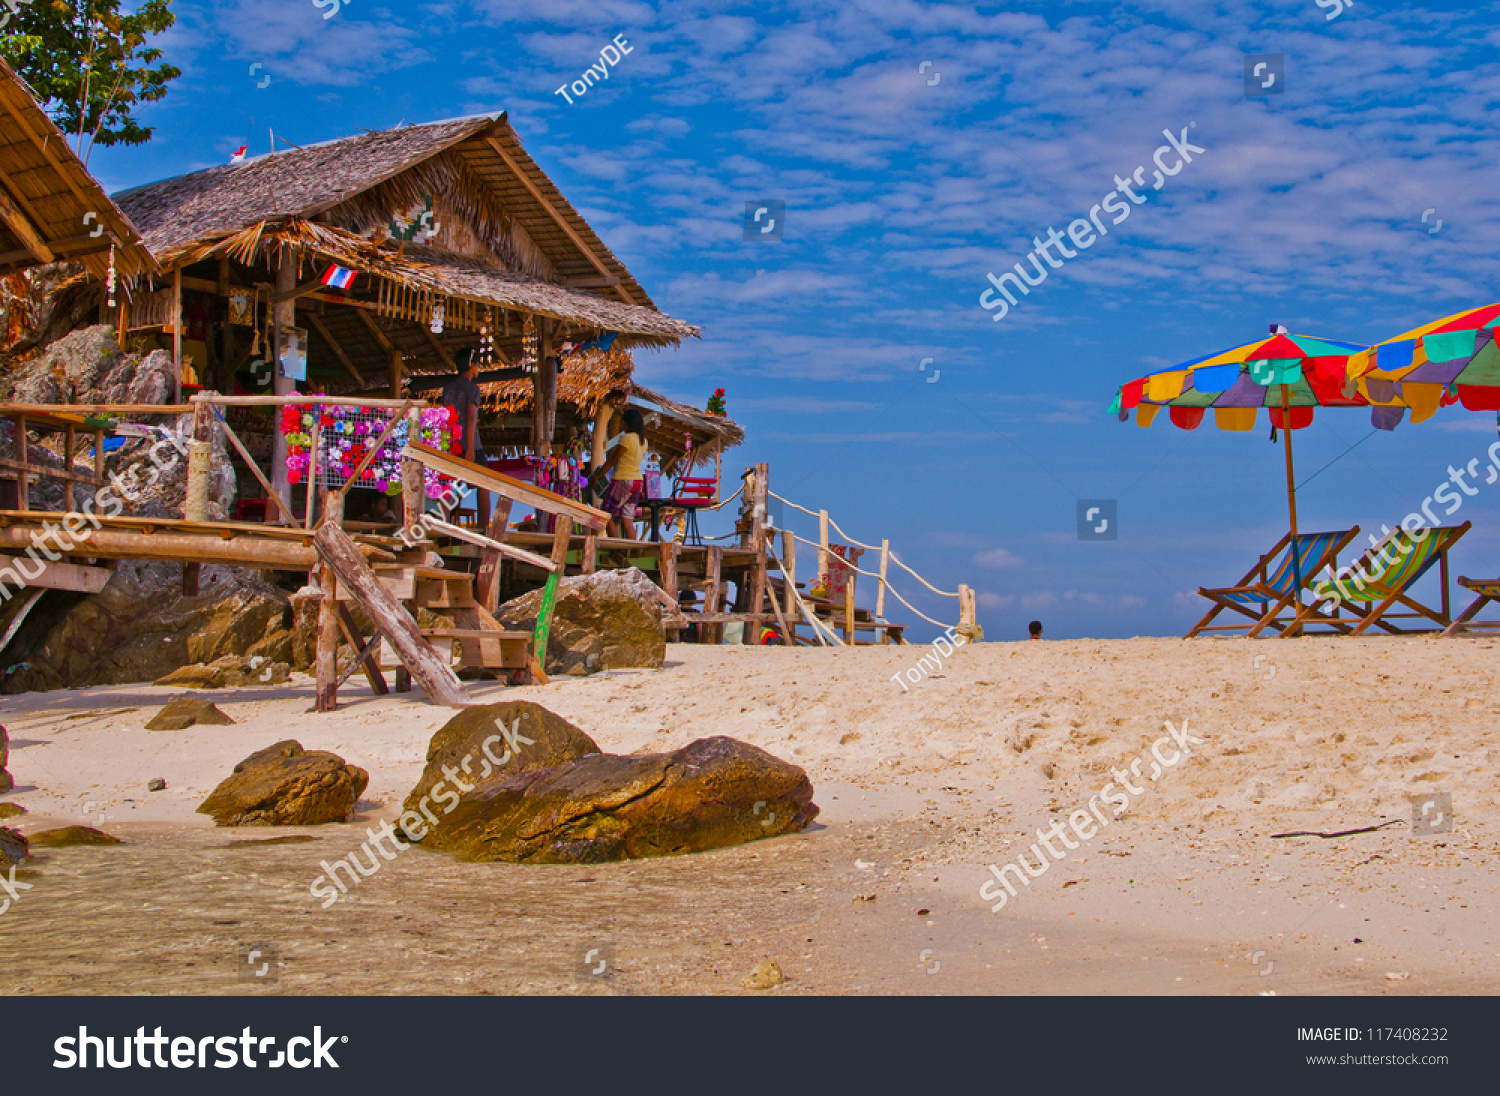 Tropical Island Beach House: Beach House In A Tropical Island Paradise Stock Photo